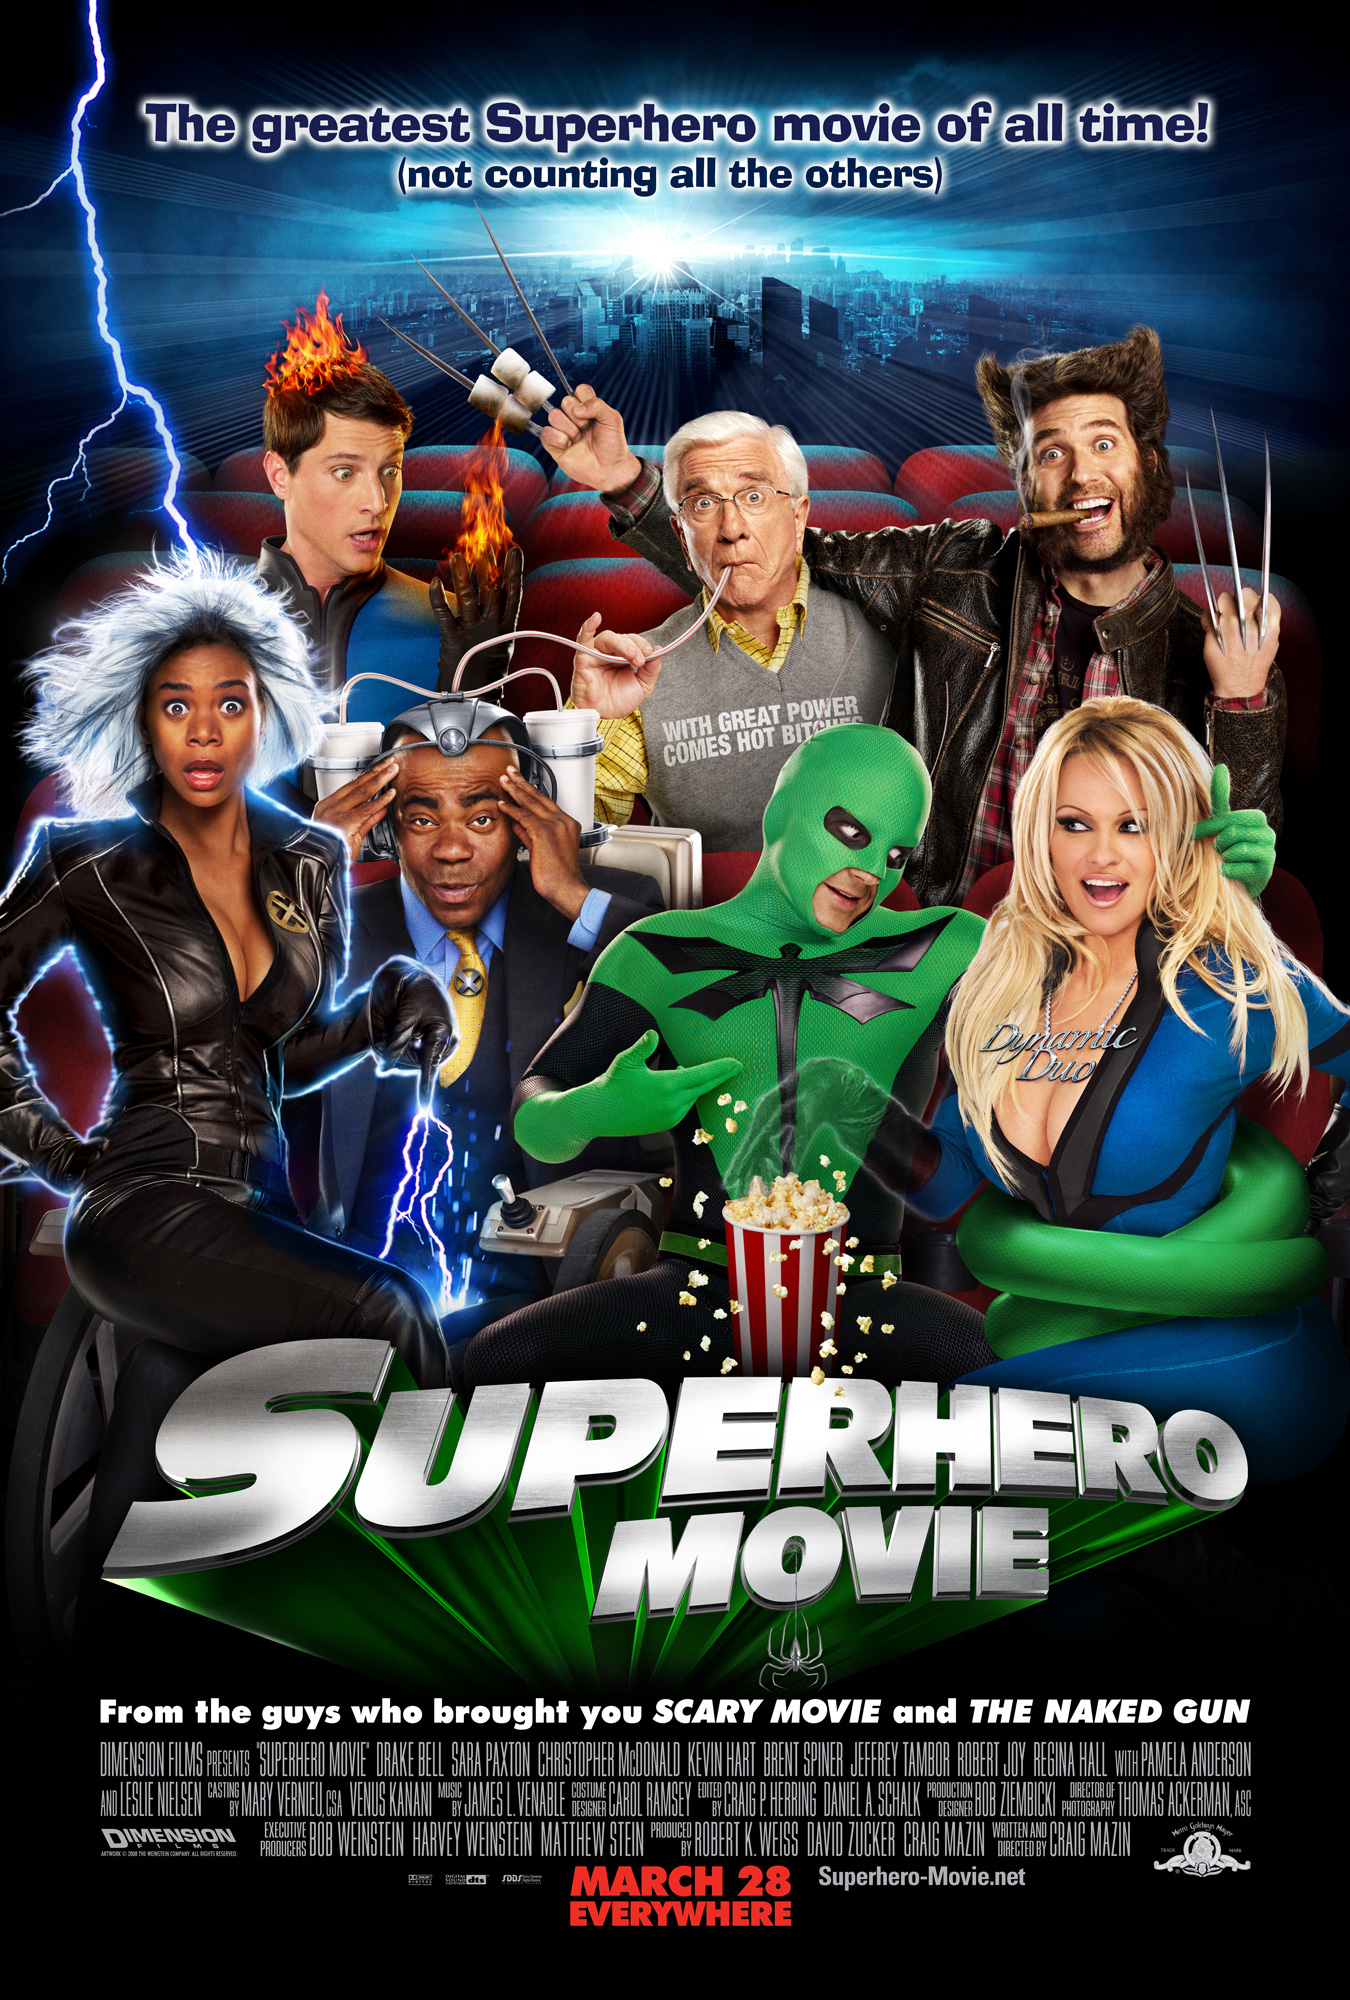 Official Movie Poster Art Released For 'Superhero Movie'